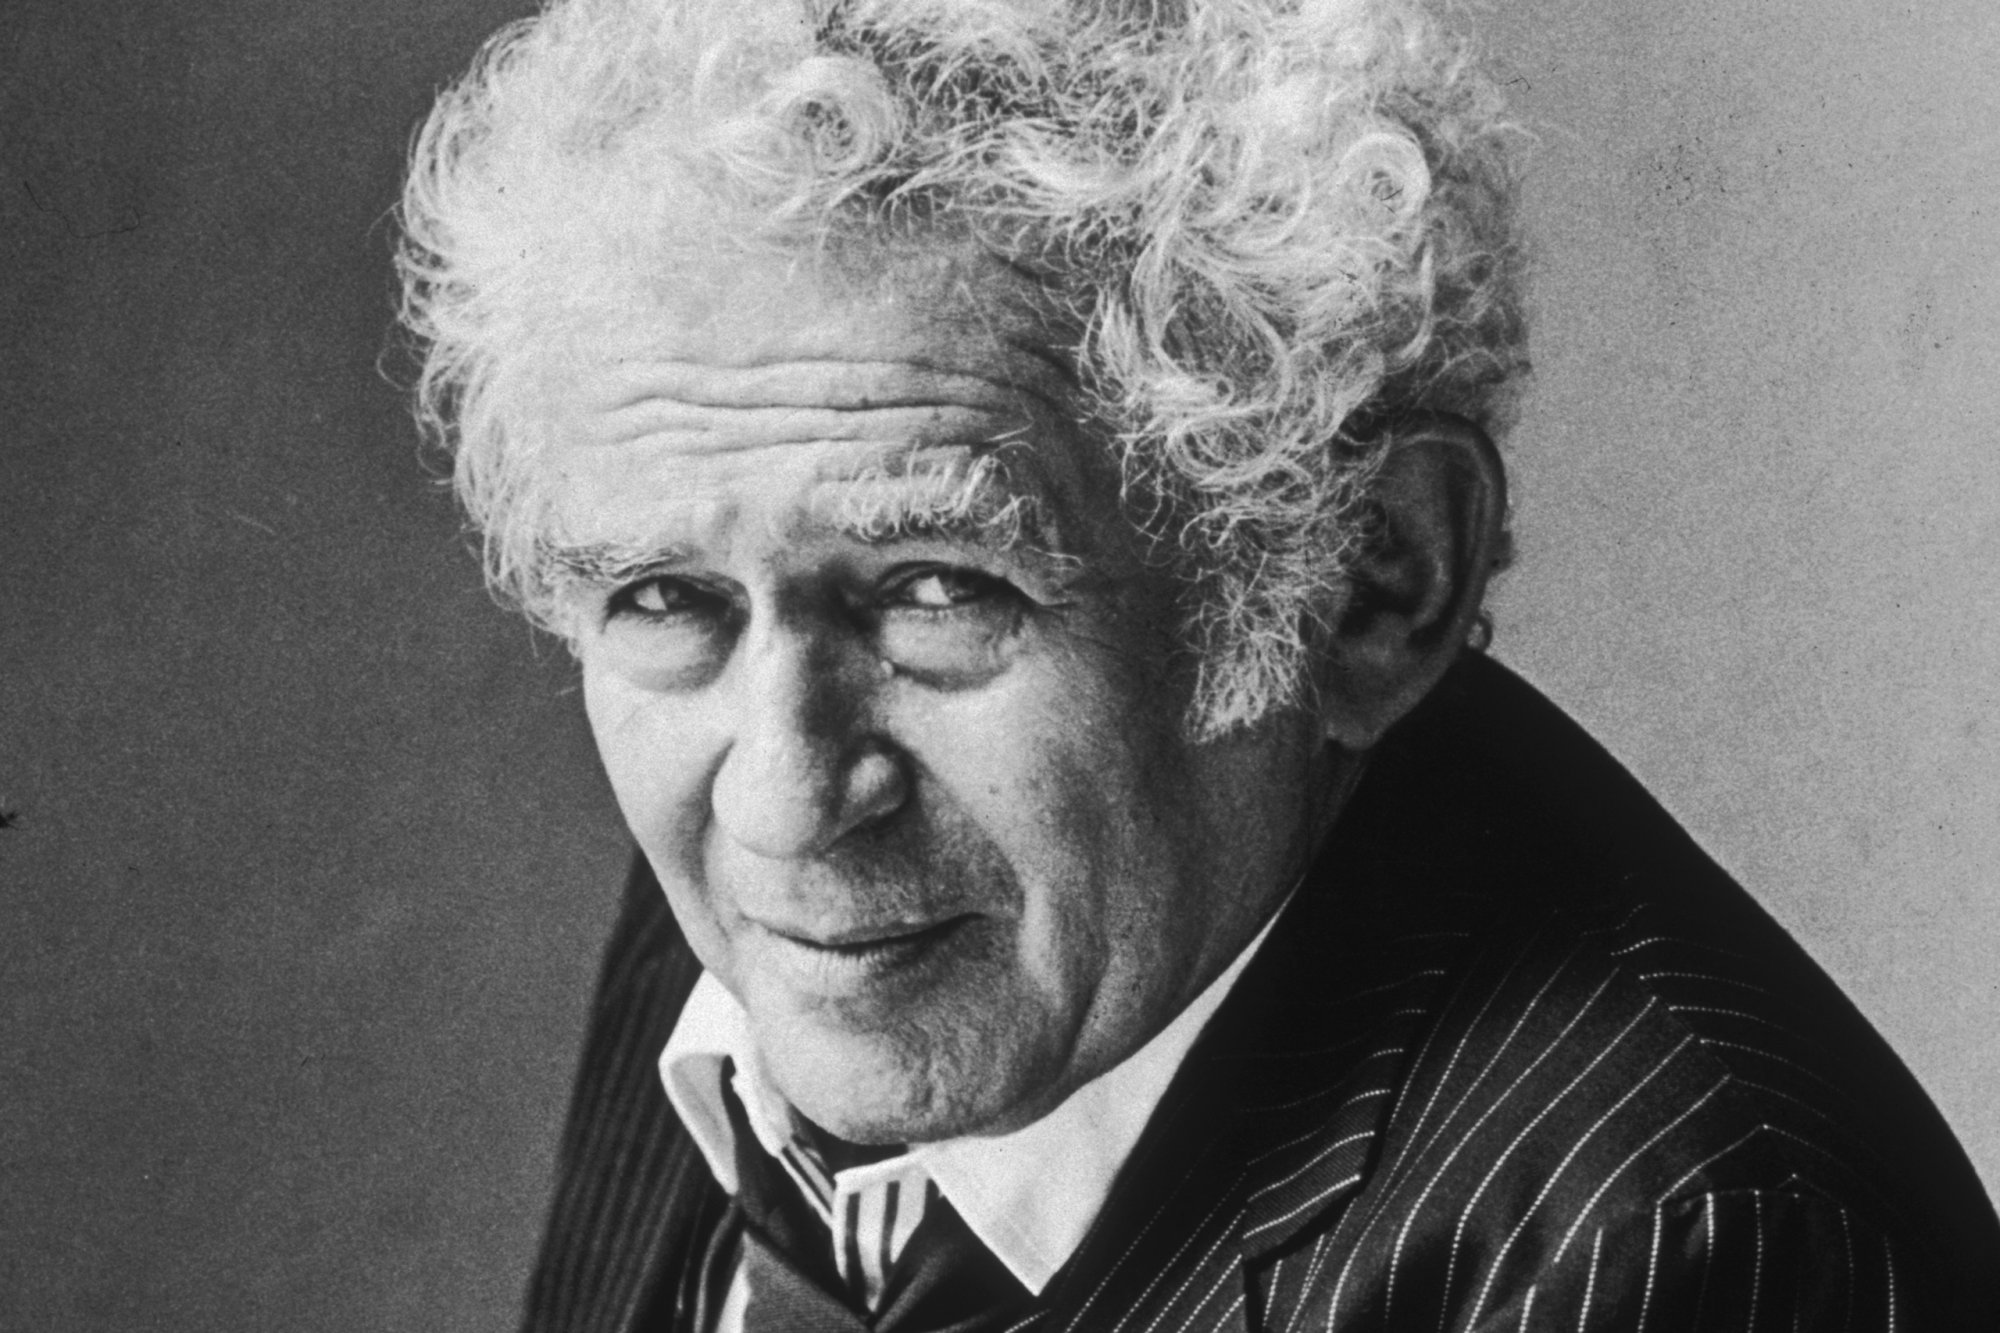 Norman Mailer Writing Awards for Creative Nonfiction